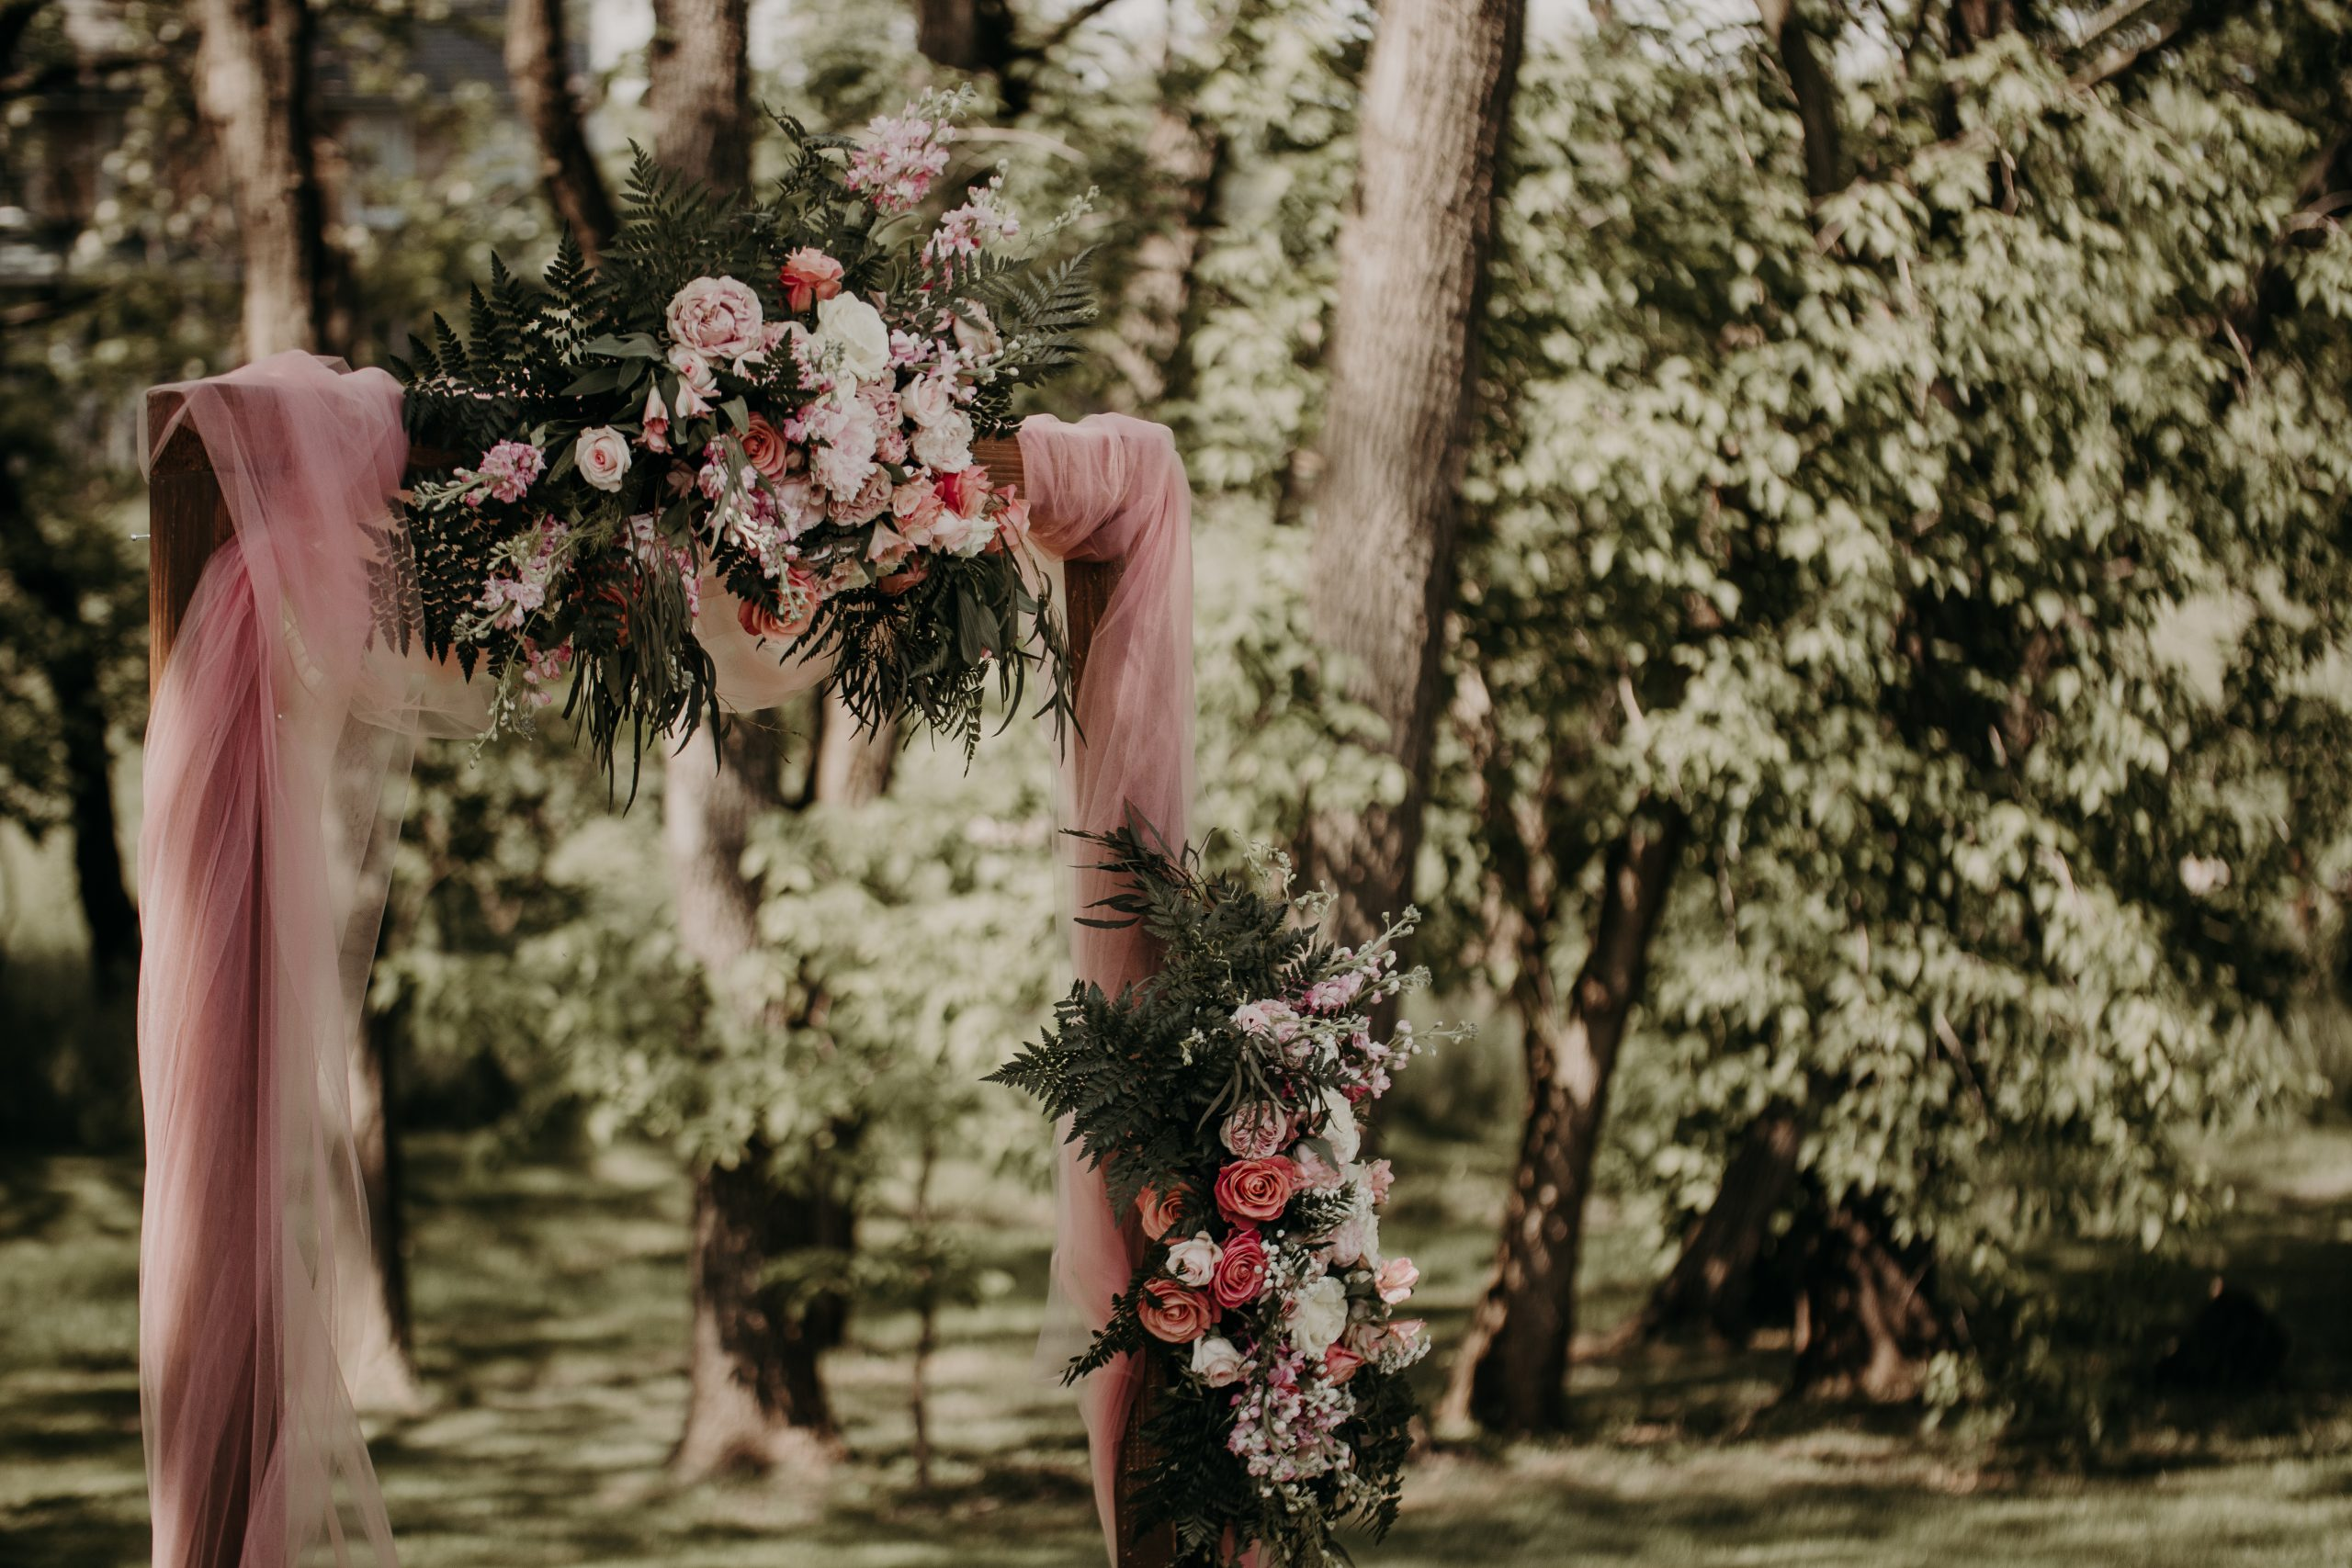 A rustic wooden archways adorned with pink and white flowers is soon to frame the newly wedded couple. Christine and Richard wed on the Chestnut Hill Villa grounds on May of 2019. This organic ethereal styled wedding was captured by Garnet Dahlia Photography and featured on Dream Weddings.